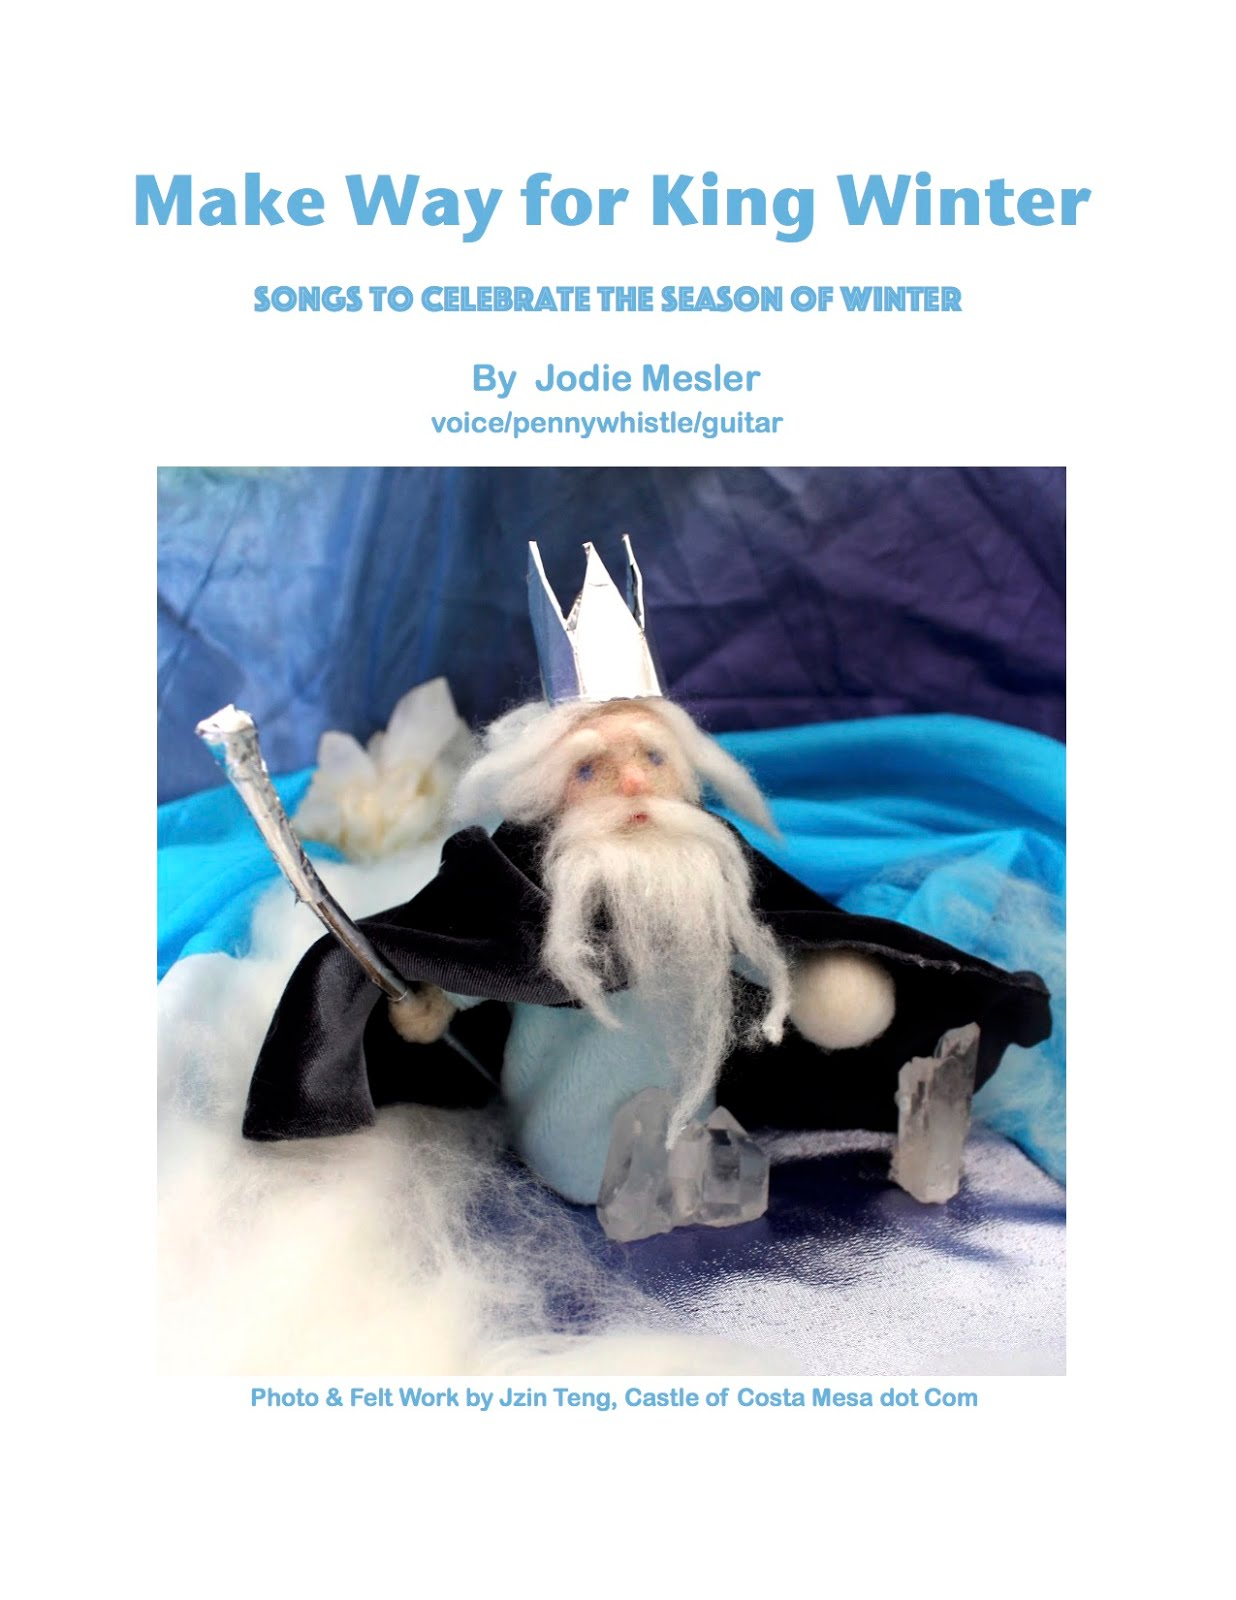 NEW!! Make Way for King Winter